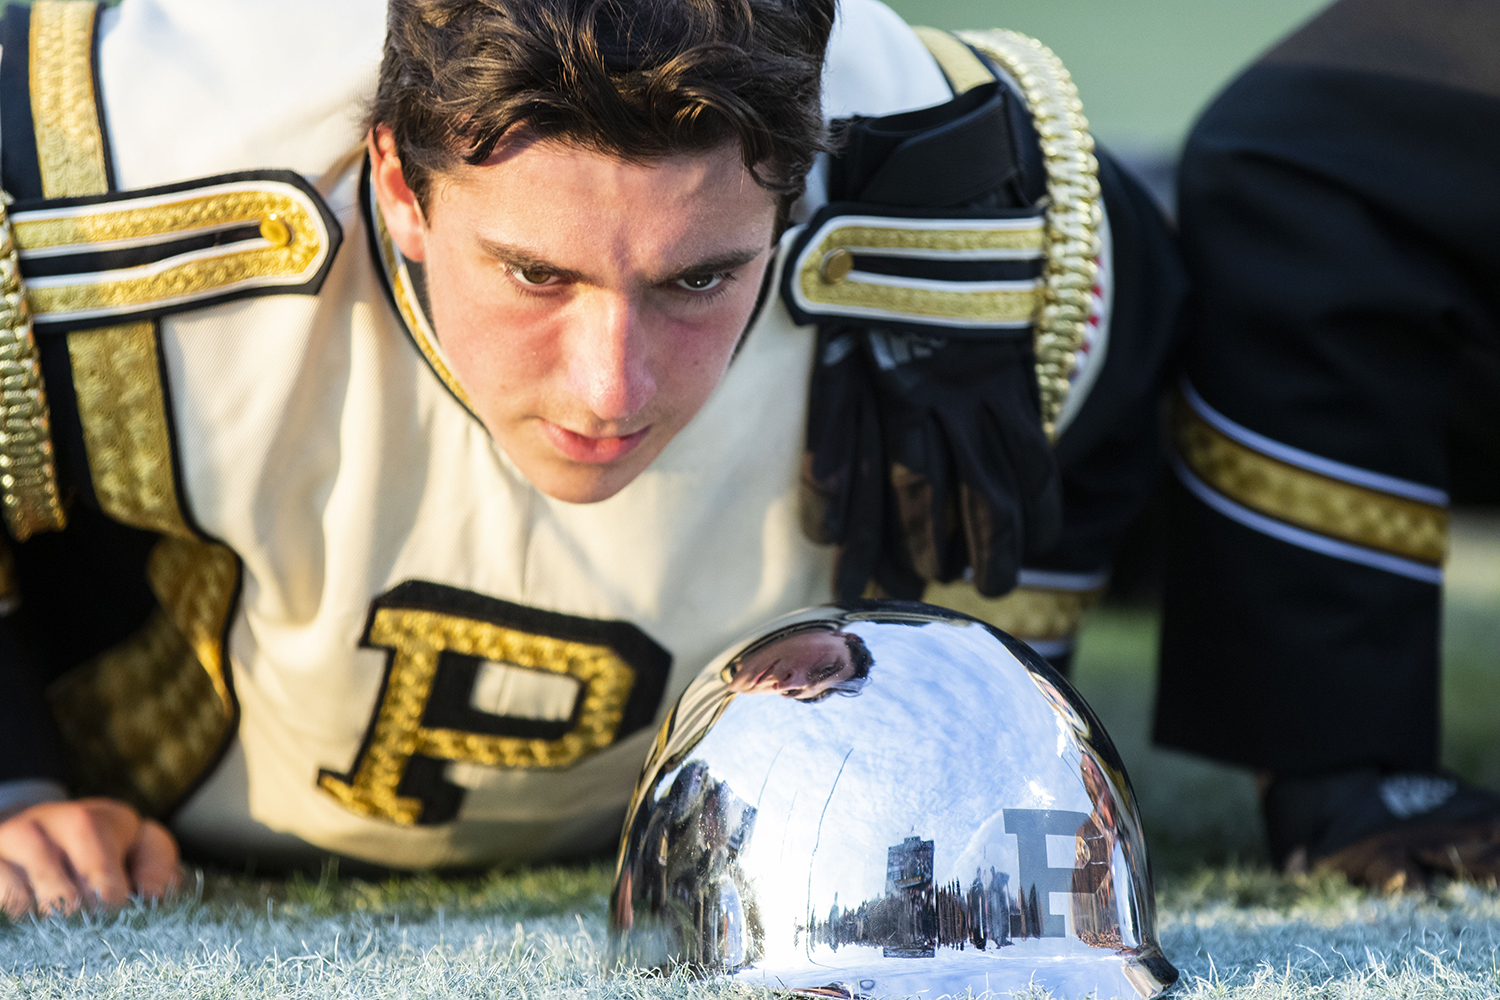 A+Purdue+All-American+Marching+Band+member+does+push+ups+after+a+Purdue+touchdown+during+the+Iowa%2FPurdue+game+at+Ross-Ade+Stadium+in+West+Lafayette%2C+Ind.+The+Boilermakers+defeated+the+Hawkeyes%2C+38-36%2C+with+a+last+second+field+goal.+